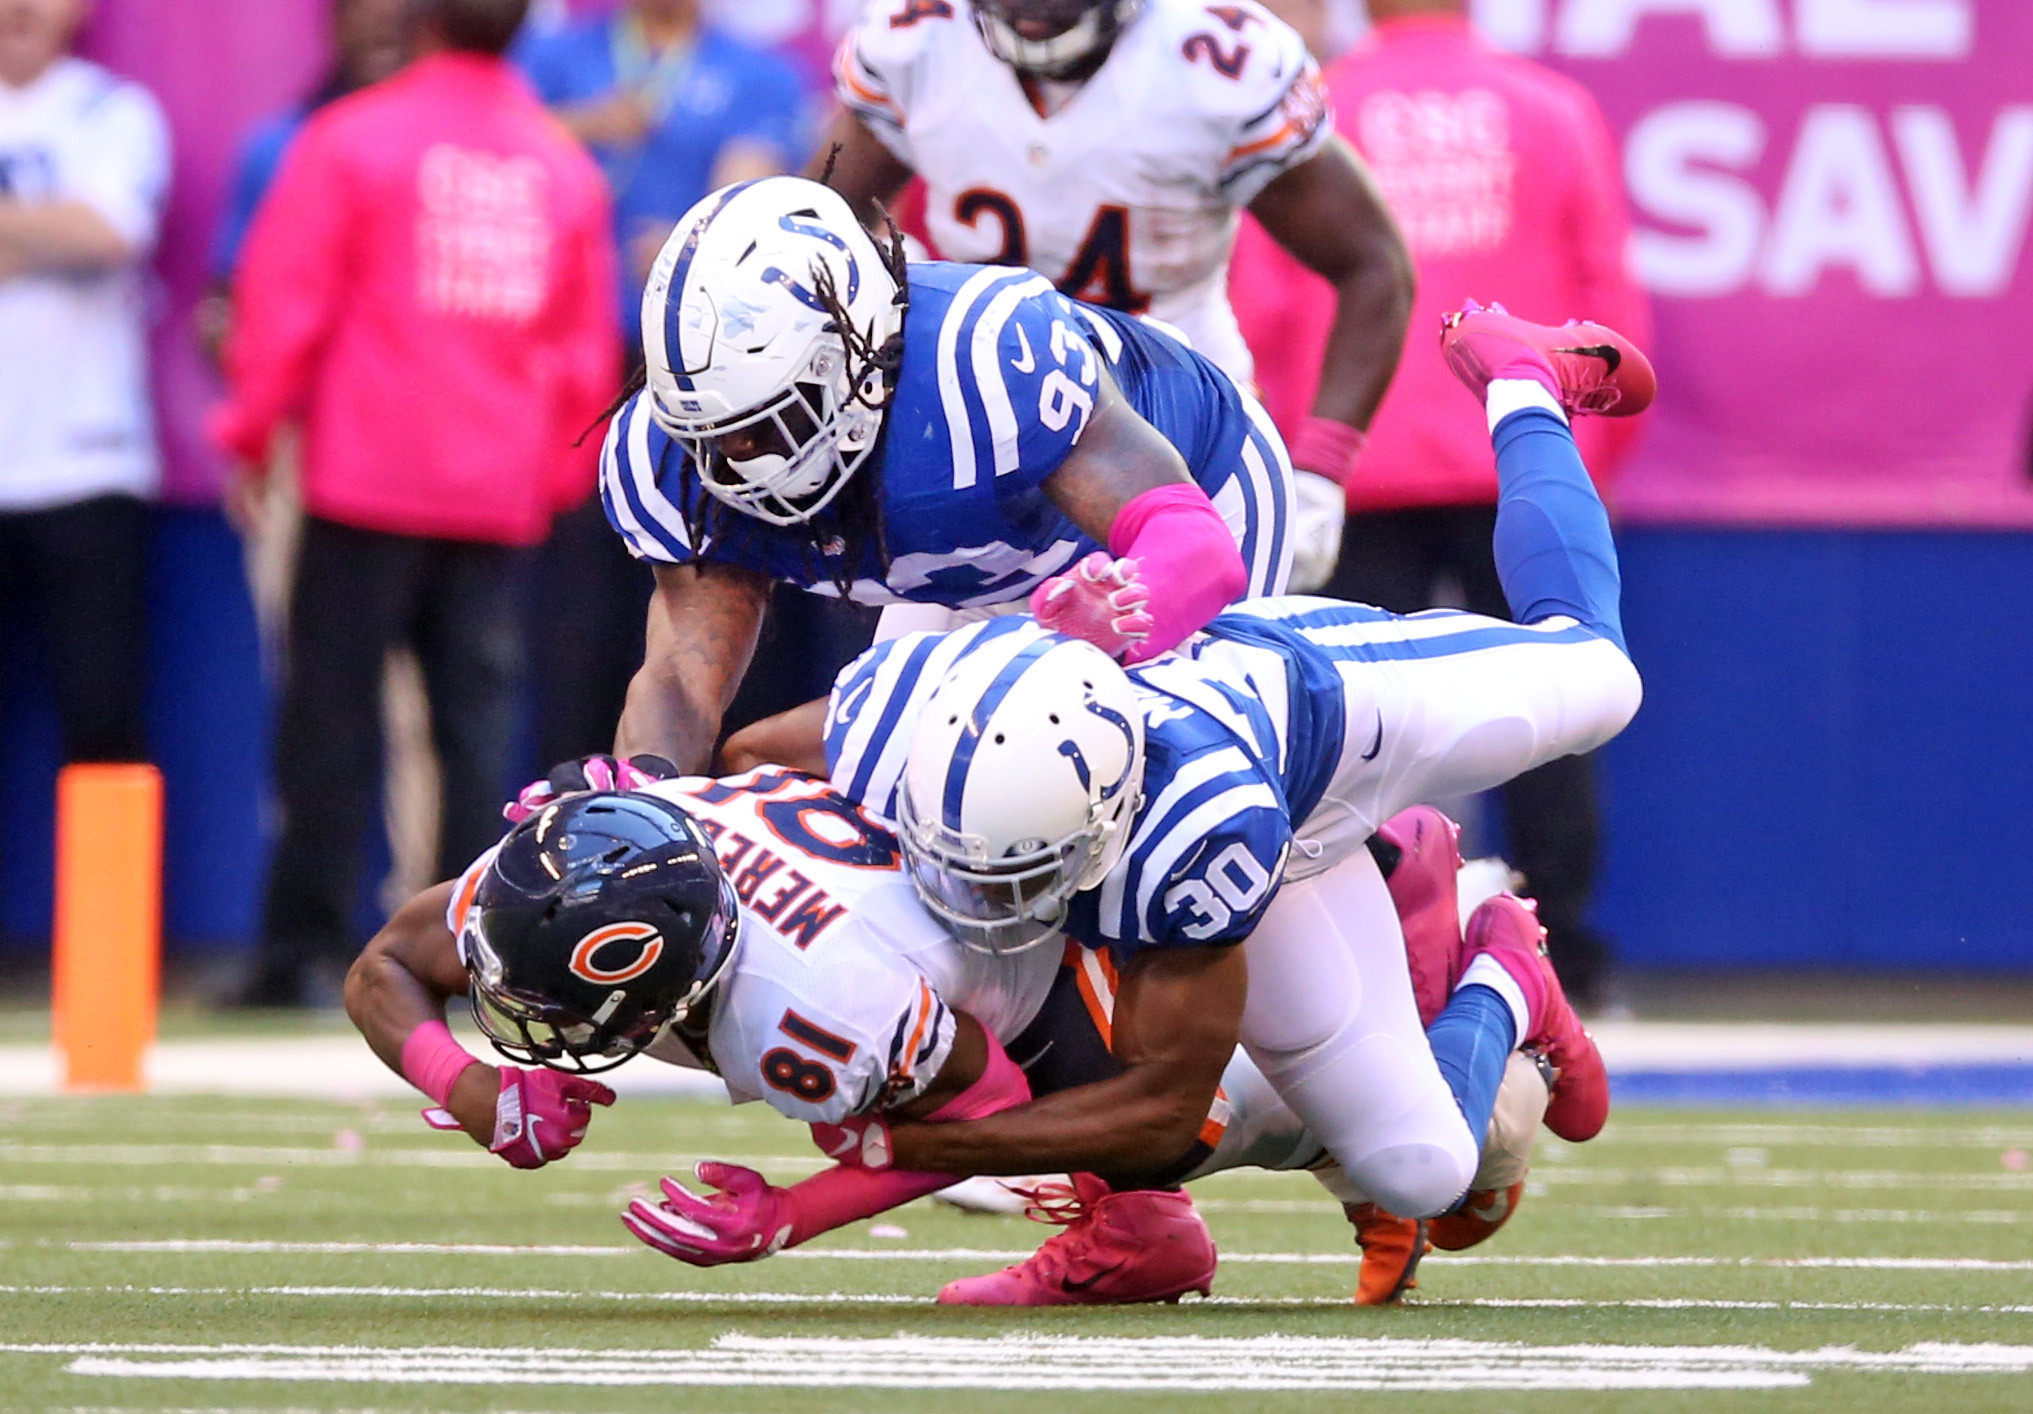 Ct-10-thoughts-bears-colts-biggs-20161010